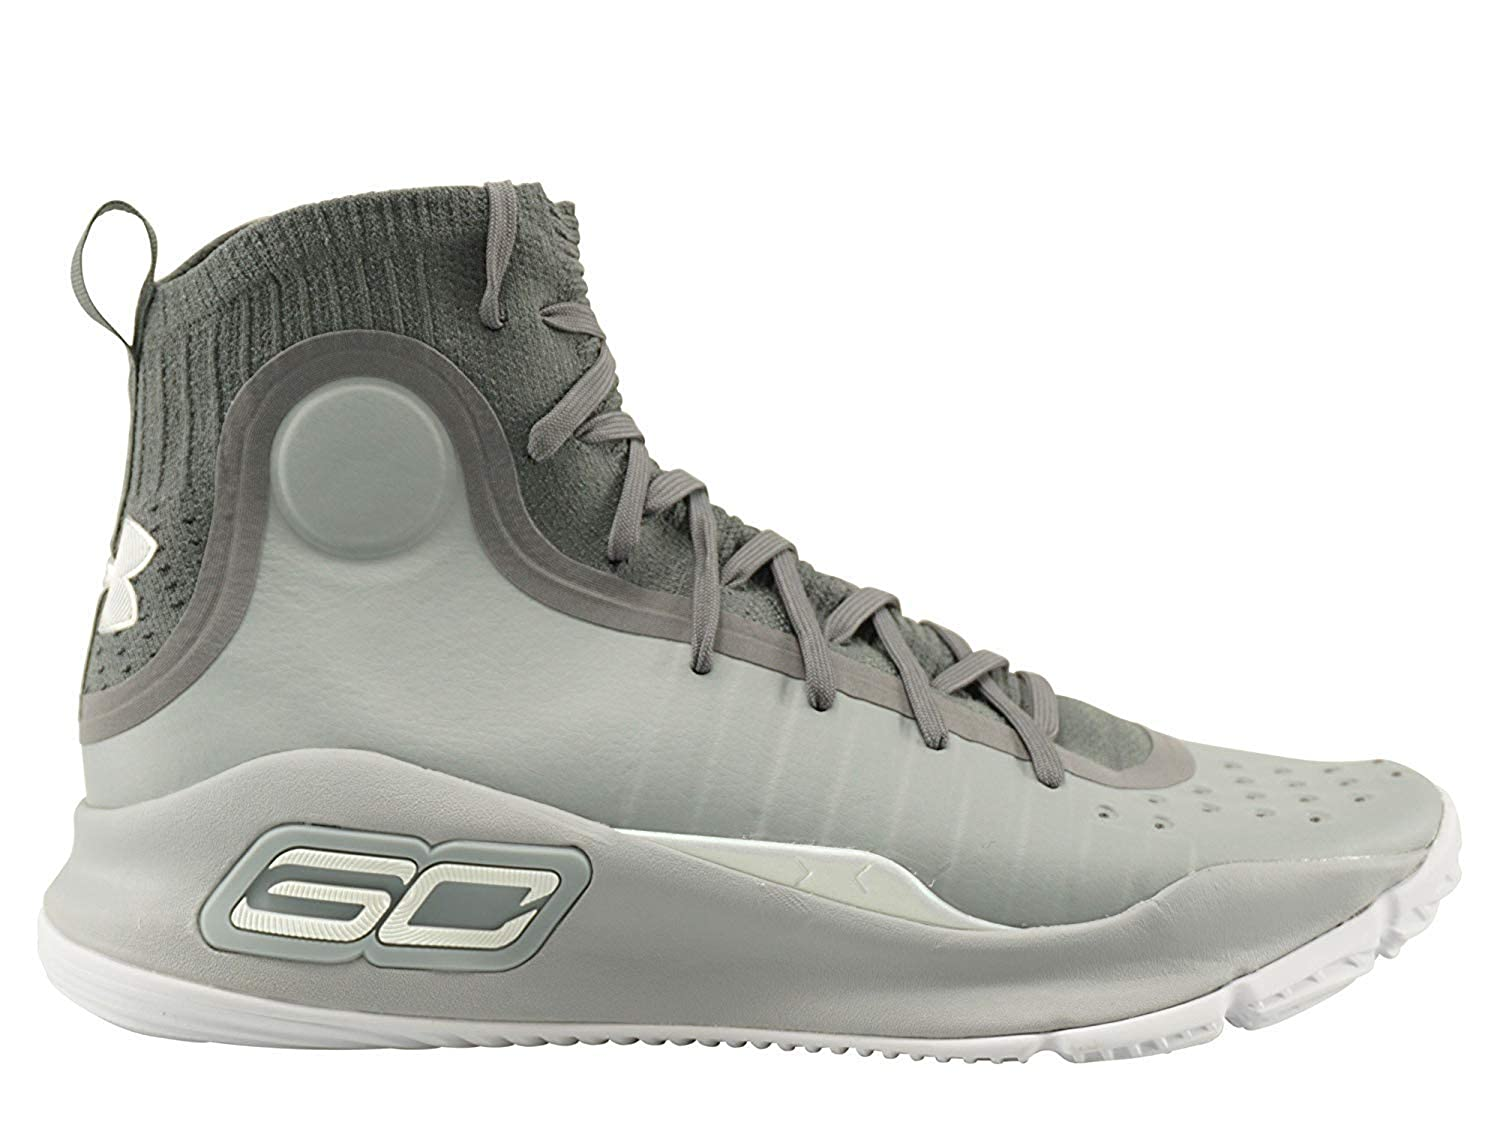 Under Armour Curry 4 Basketball Shoes